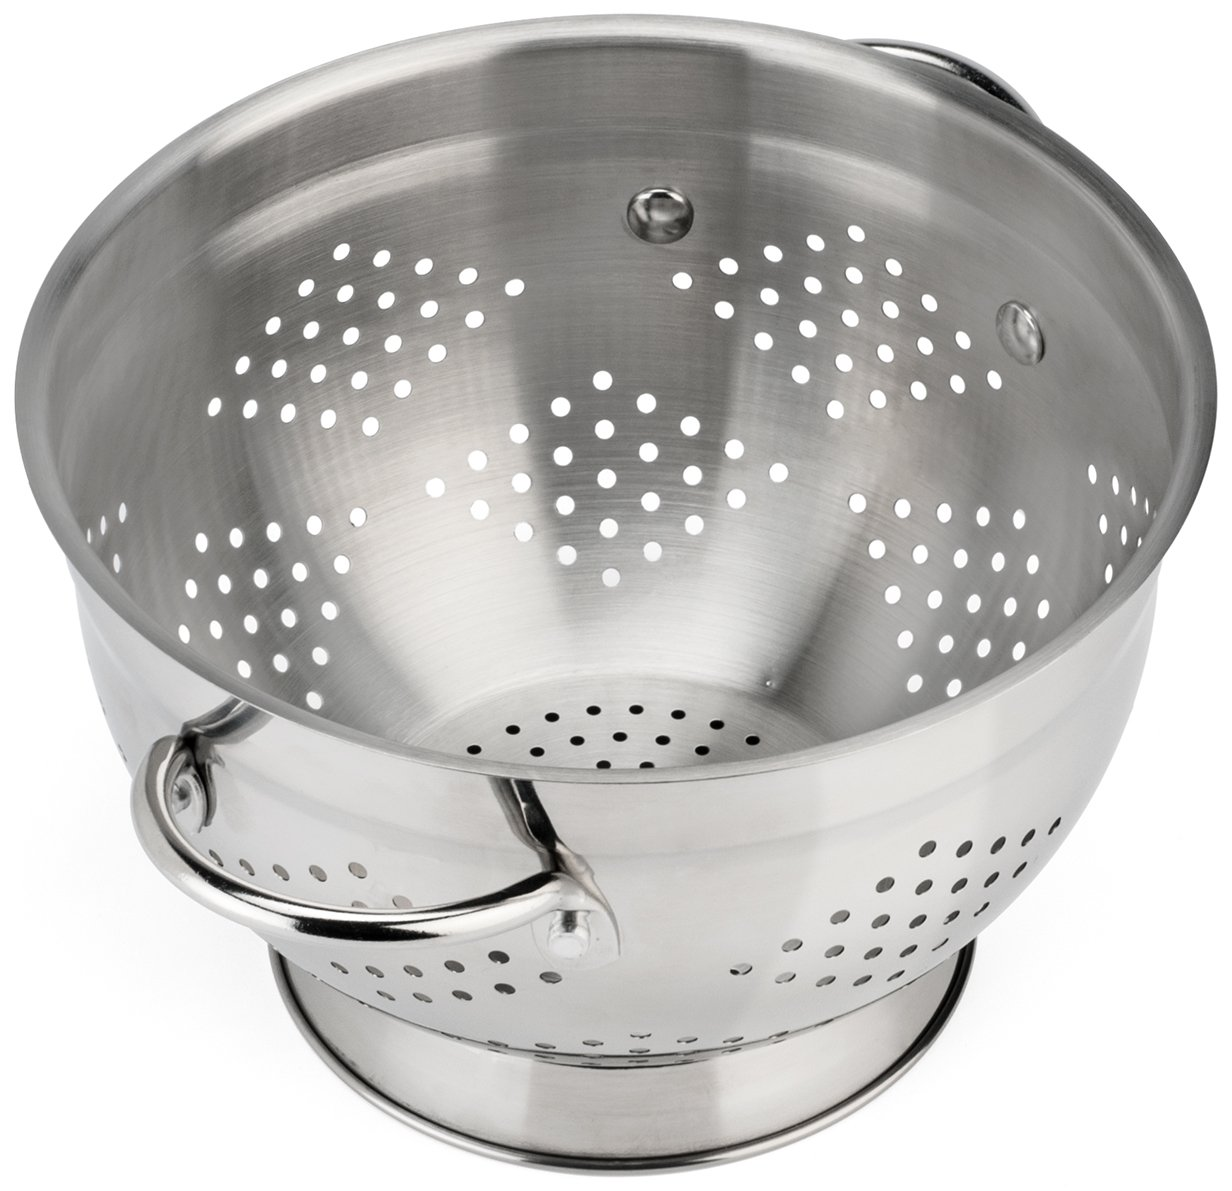 Raishi stainless steel classic colander